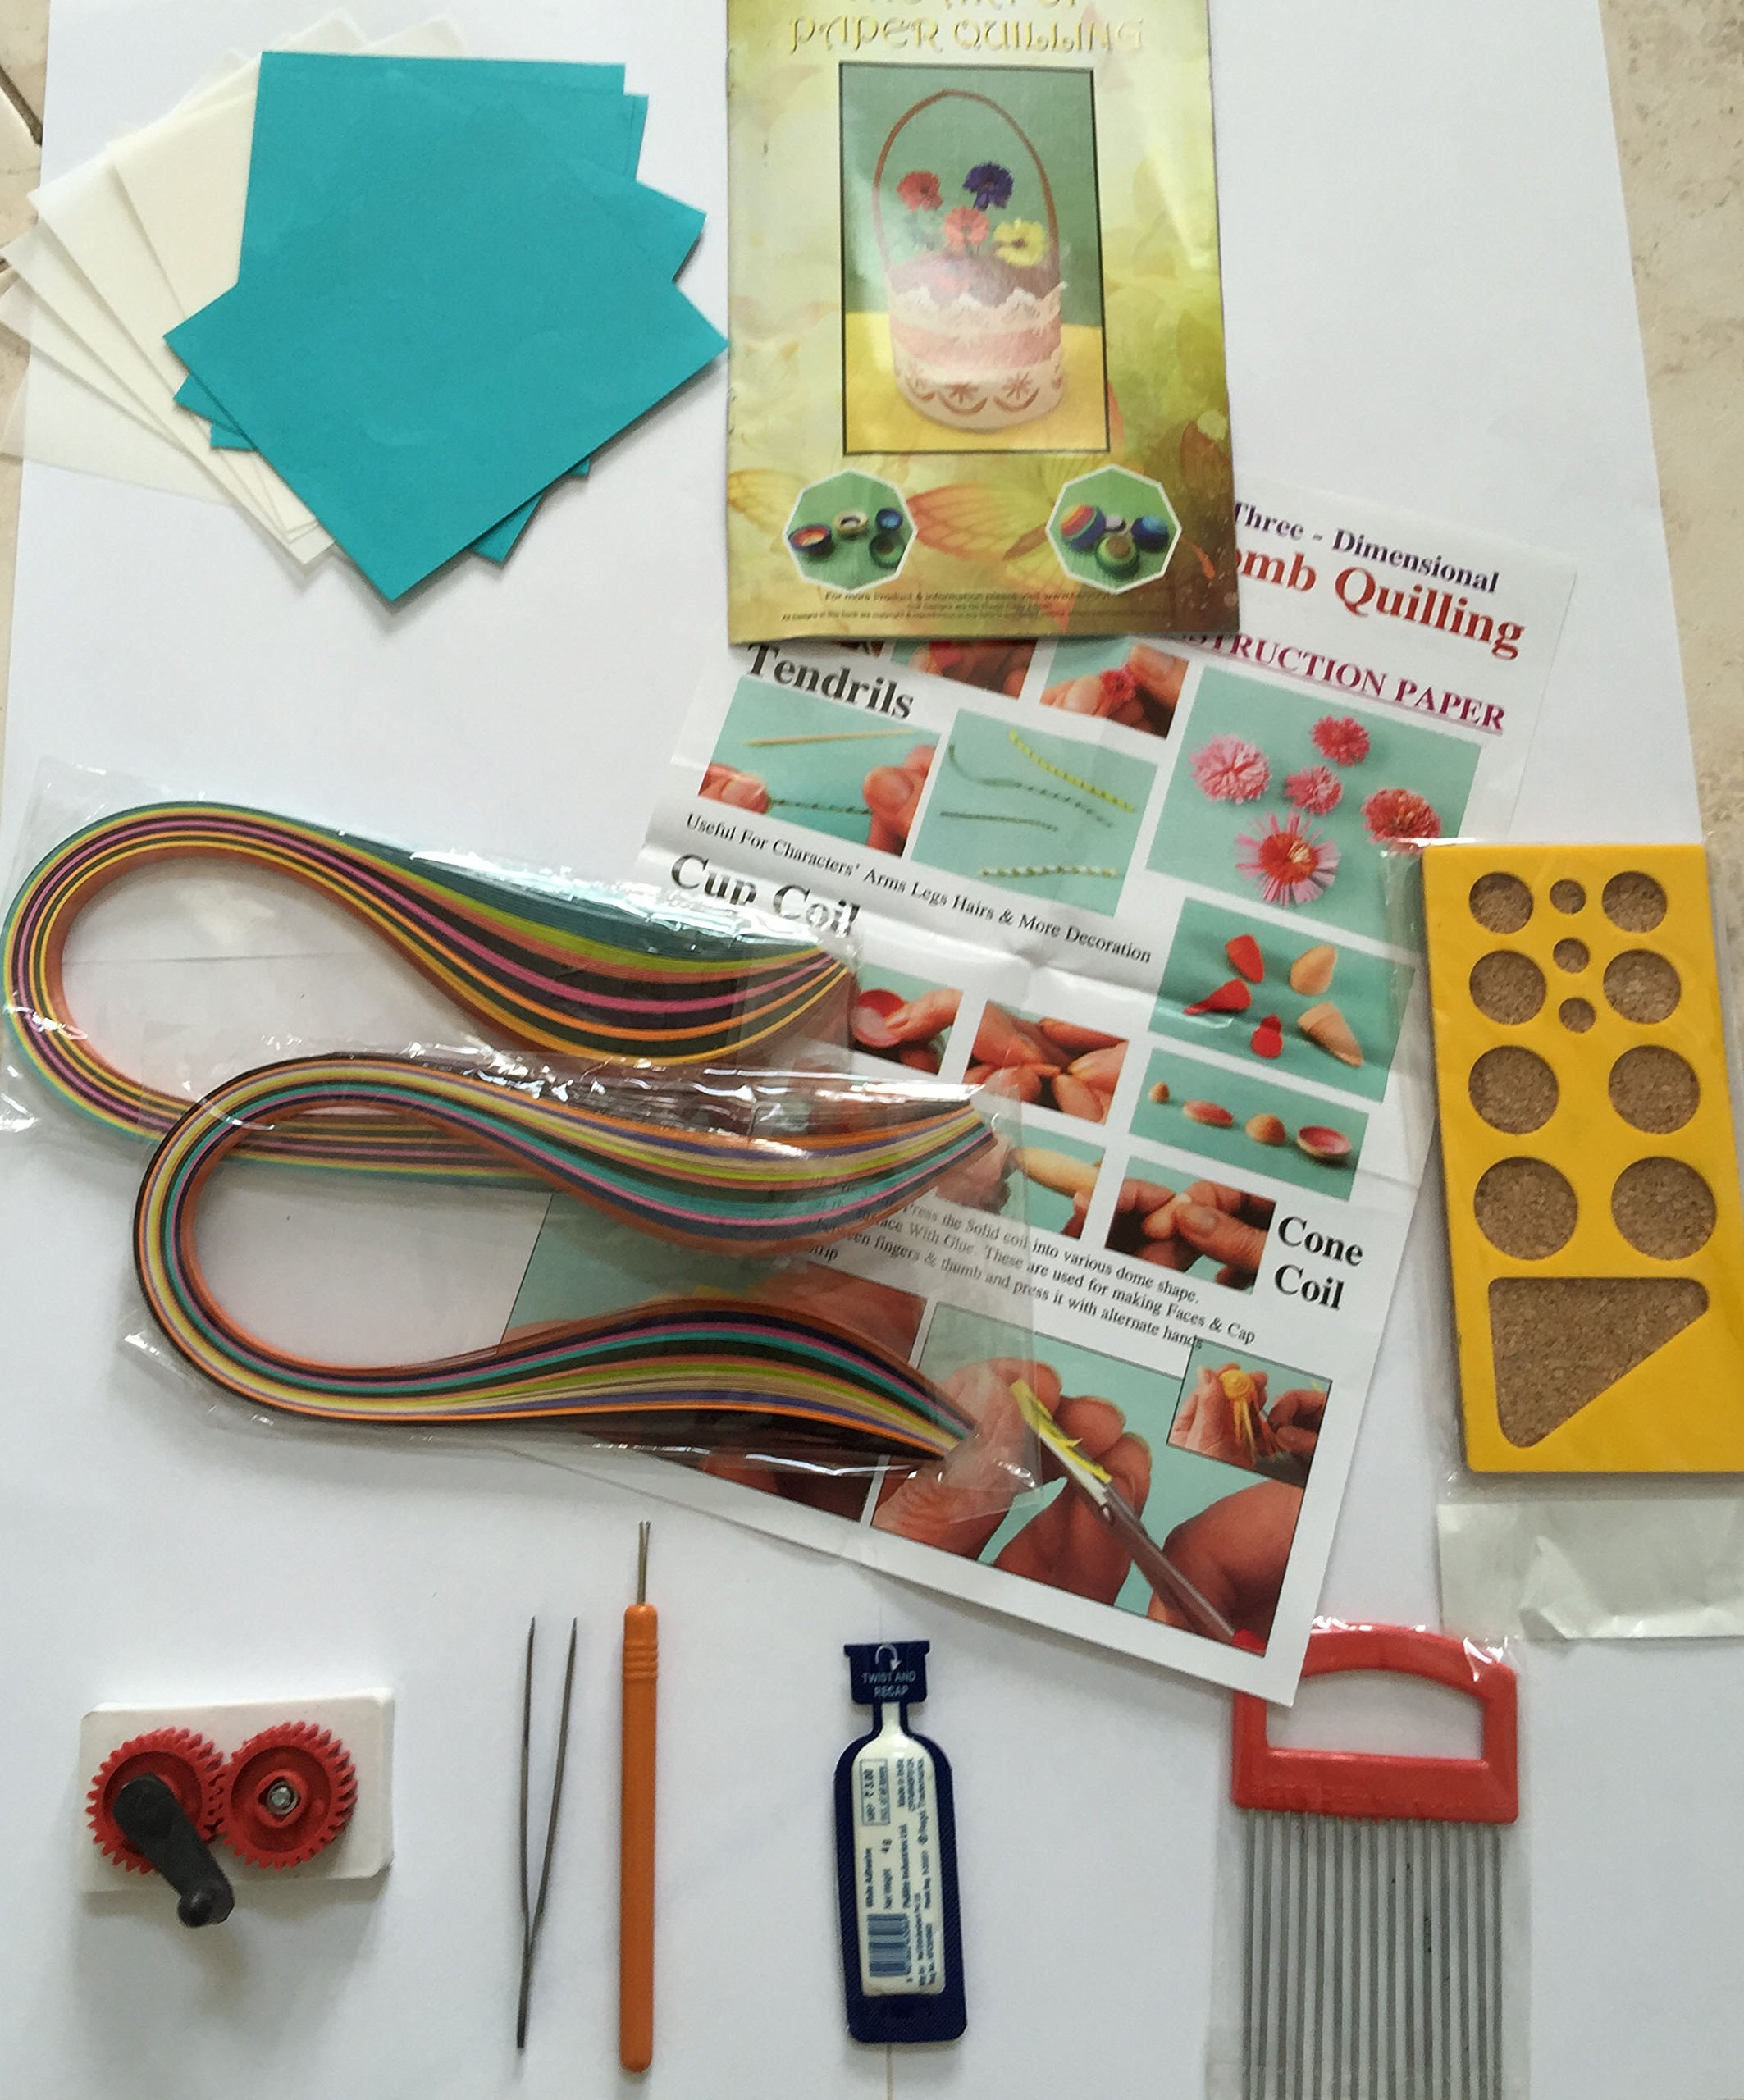 PARAG QUILLING COMPLETE QUILLING KIT STUDENT CRAFT KIT by PARAG